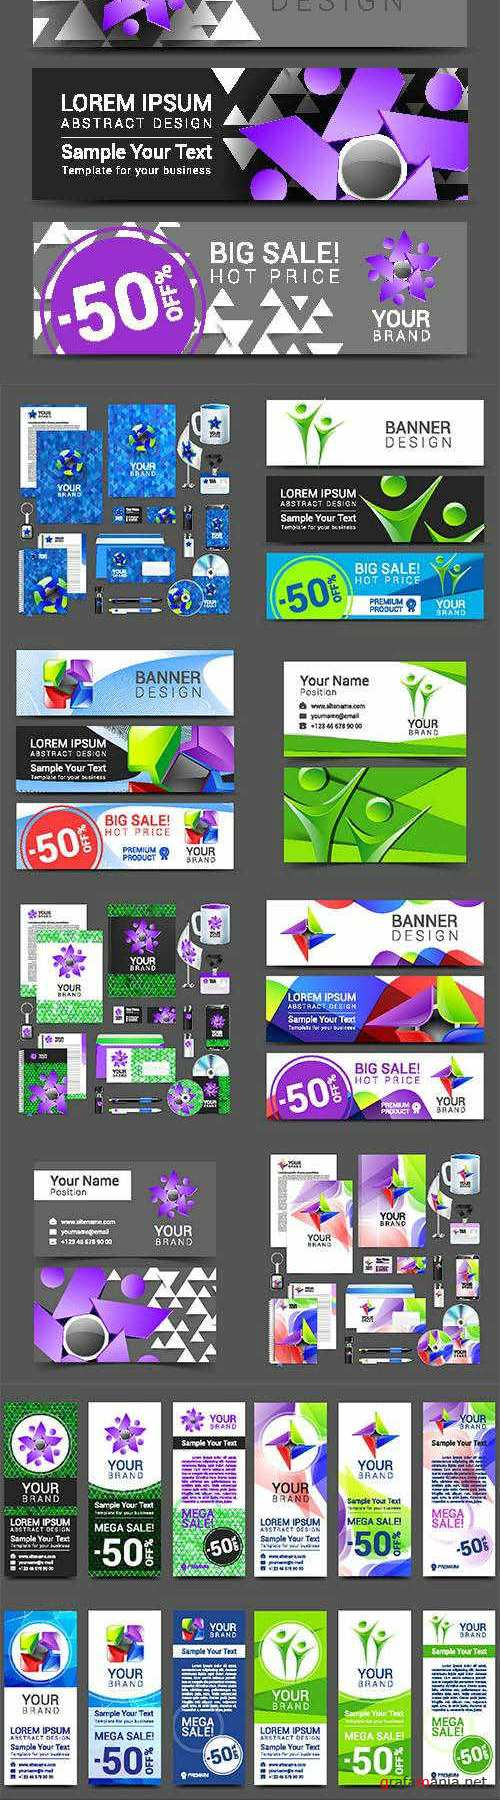 Vector - Corporate style banners and business cards